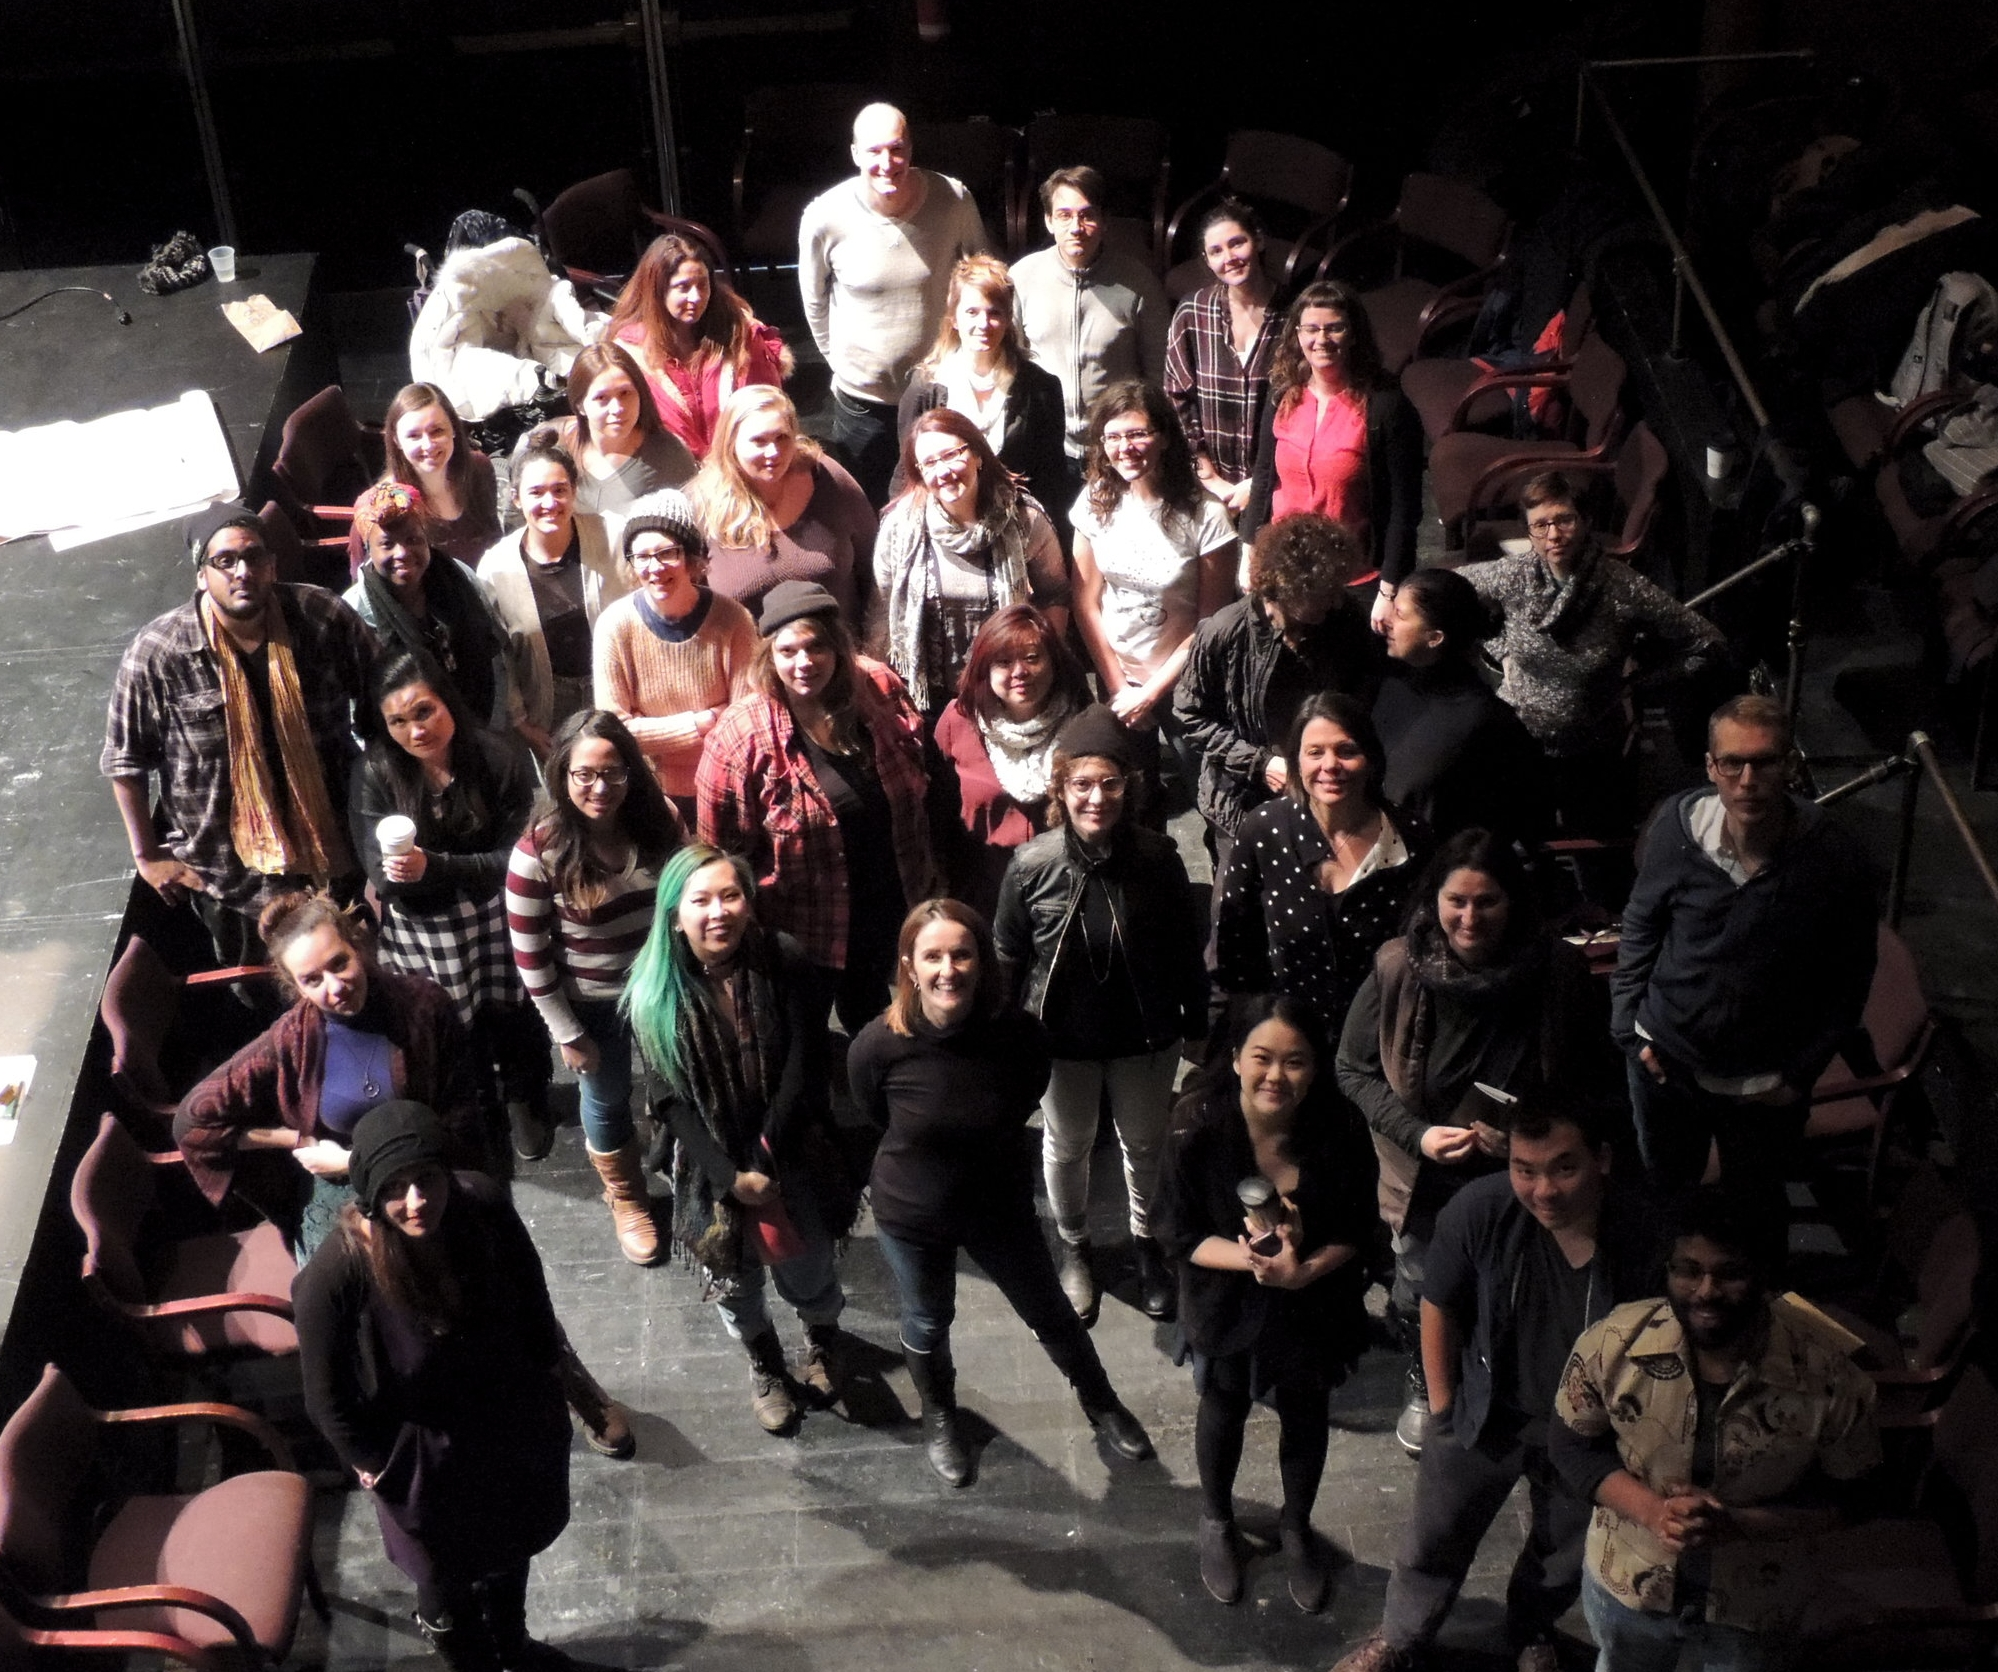 Group shot of the brave participants wanting to tackle challenges with hiring practices in Canadian theatre at  The White Guy Shuffle  on Jan 15, 2017.